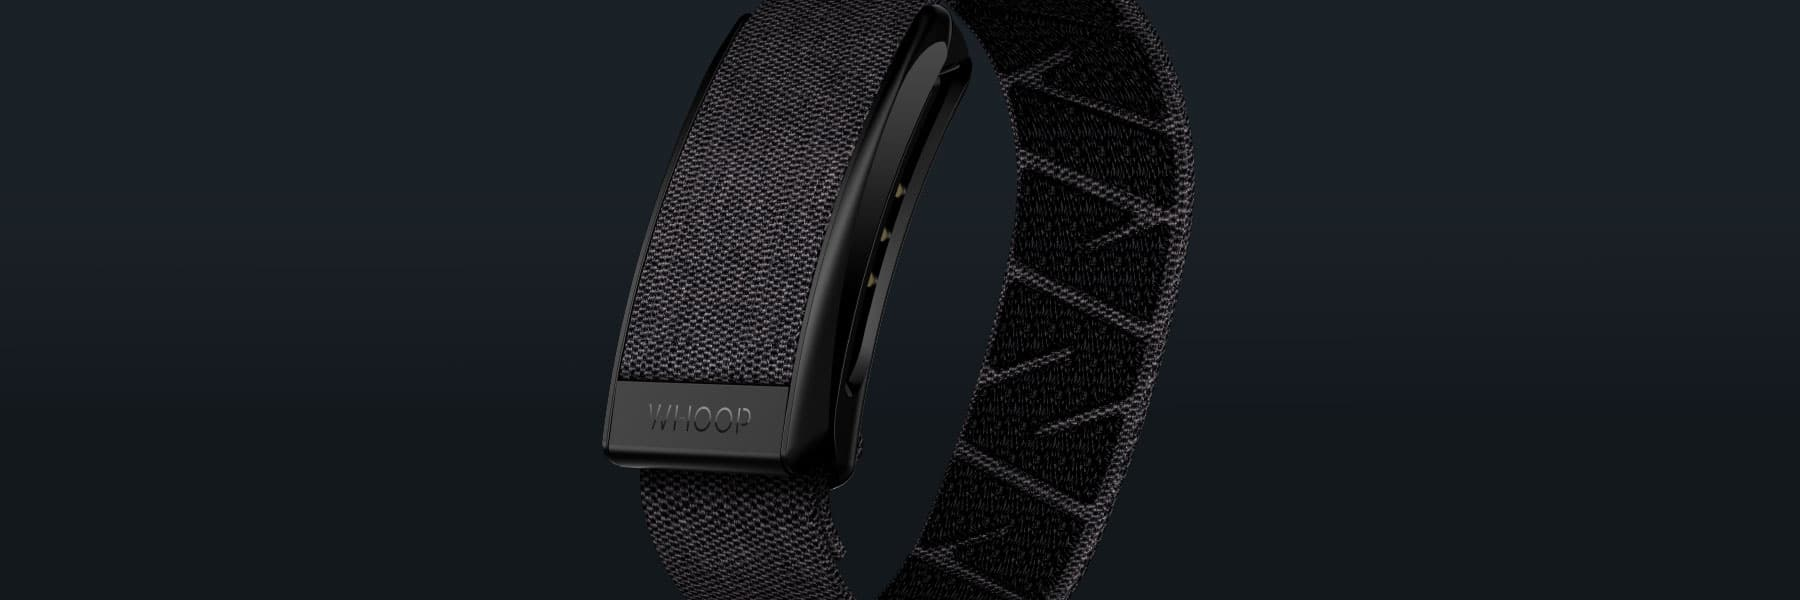 WHOOP Strap 3.0 Bluetooth Low Energy Tips and Tricks - WHOOP